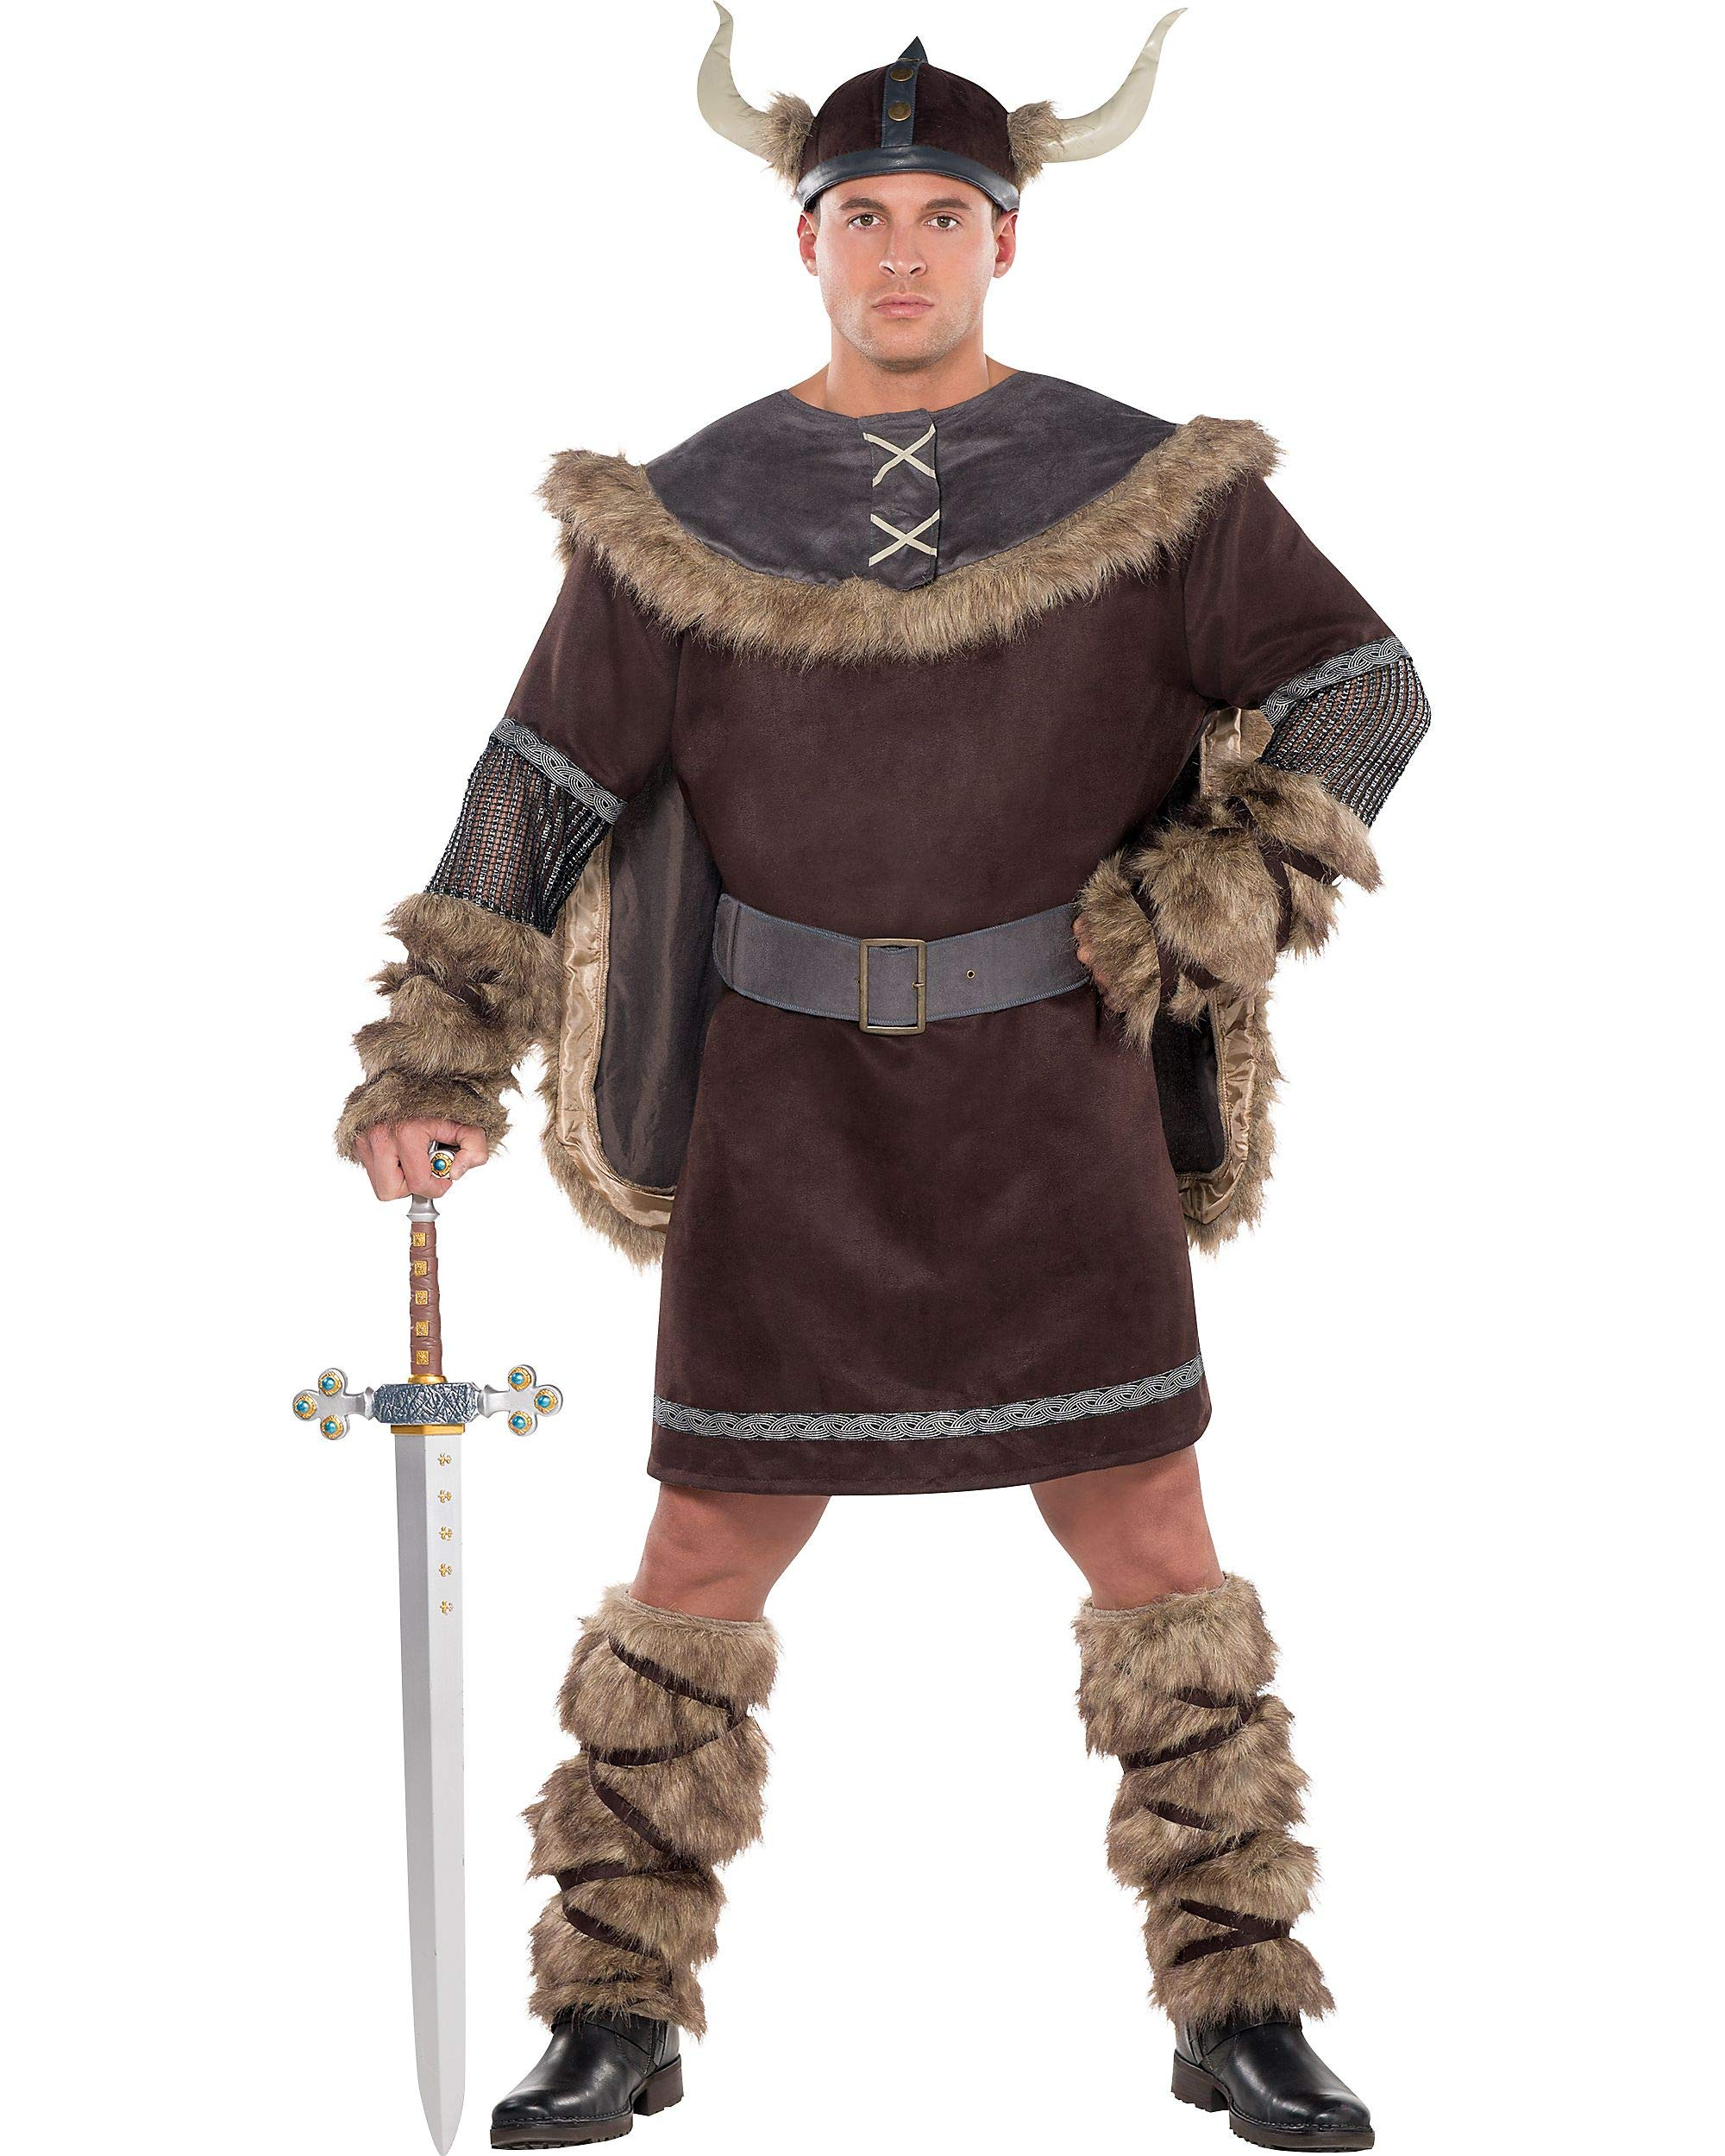 Amscan AMSCAN Viking Warrior Halloween Costume for Men, Plus Size, with Included Accessories by amscan